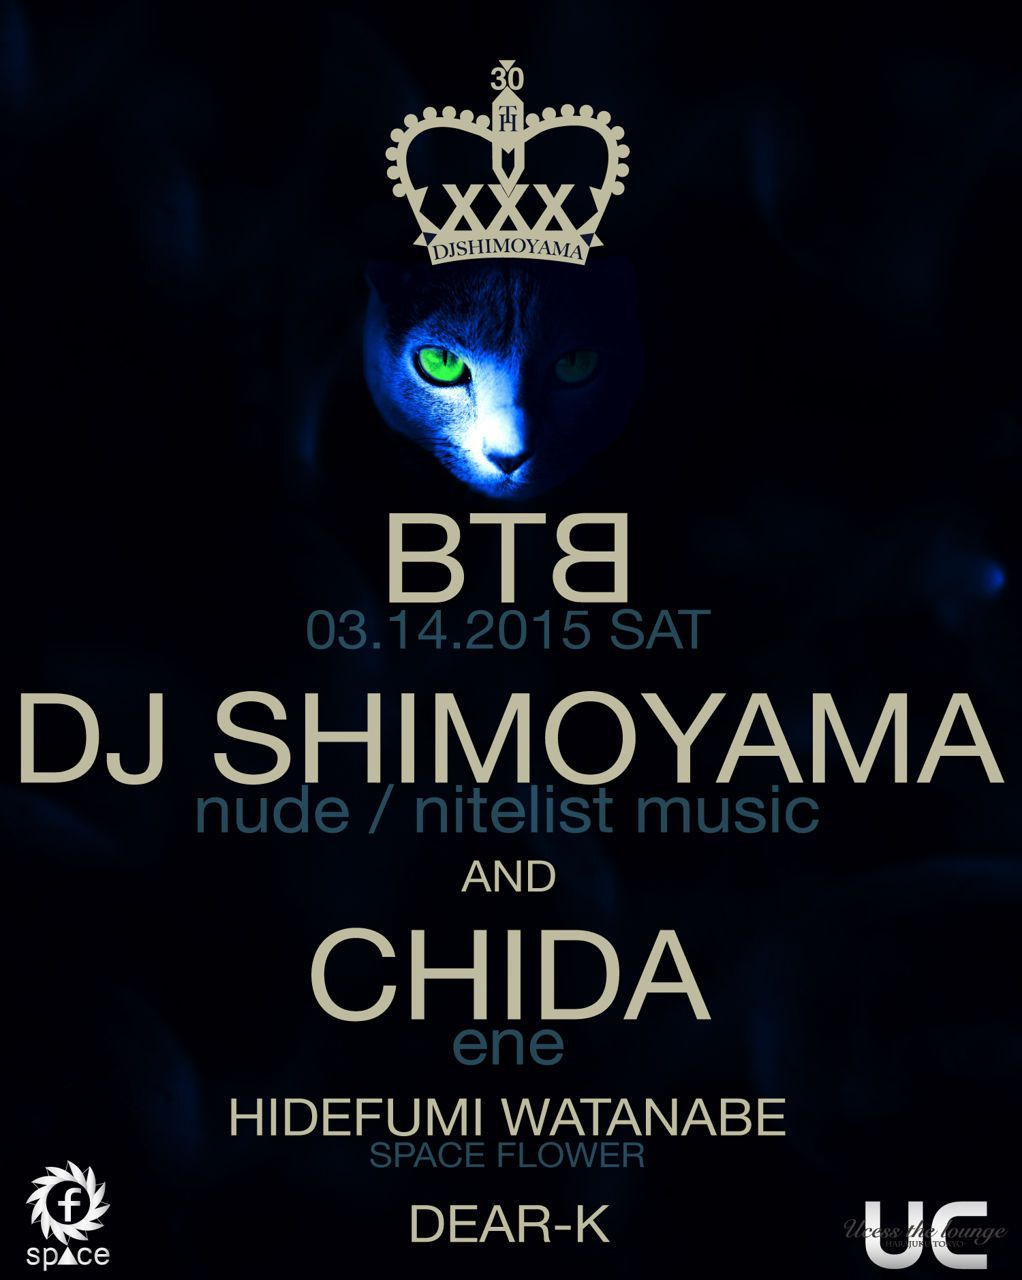 BTB (BACK TO BASIC) dj shimoyama anniversary year